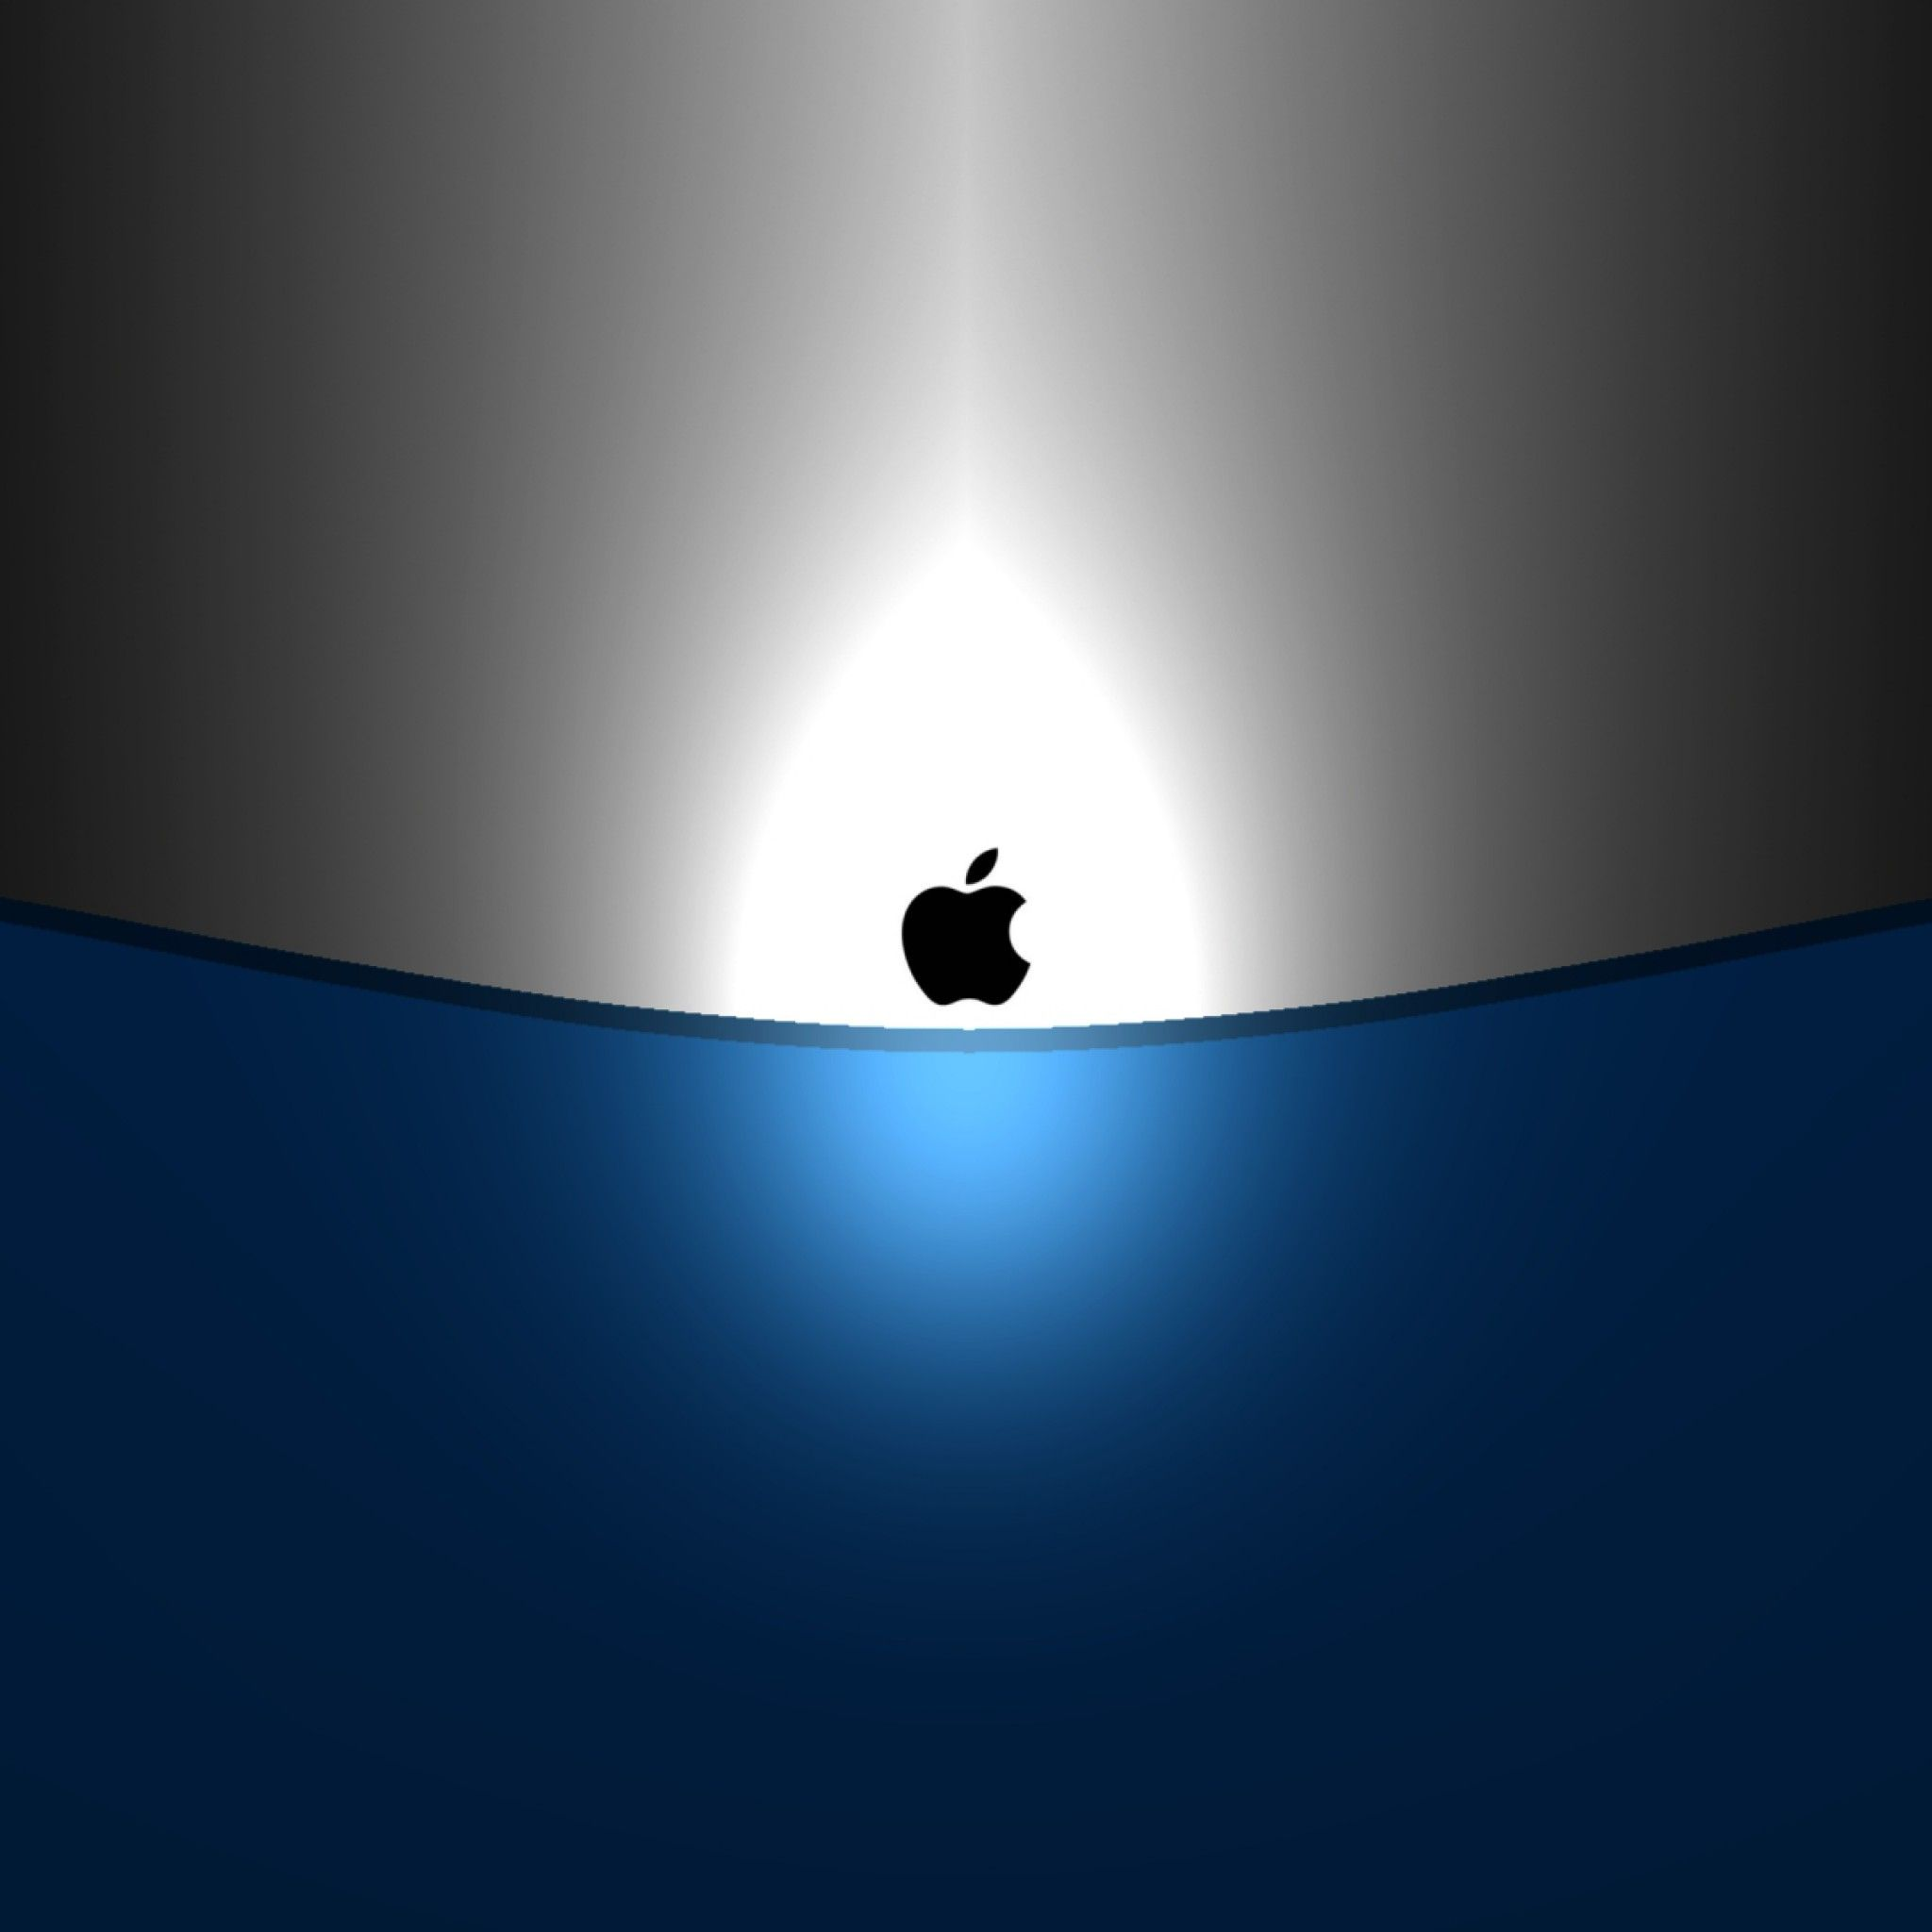 apple dark blue background apple iphone 5s hd wallpapers available